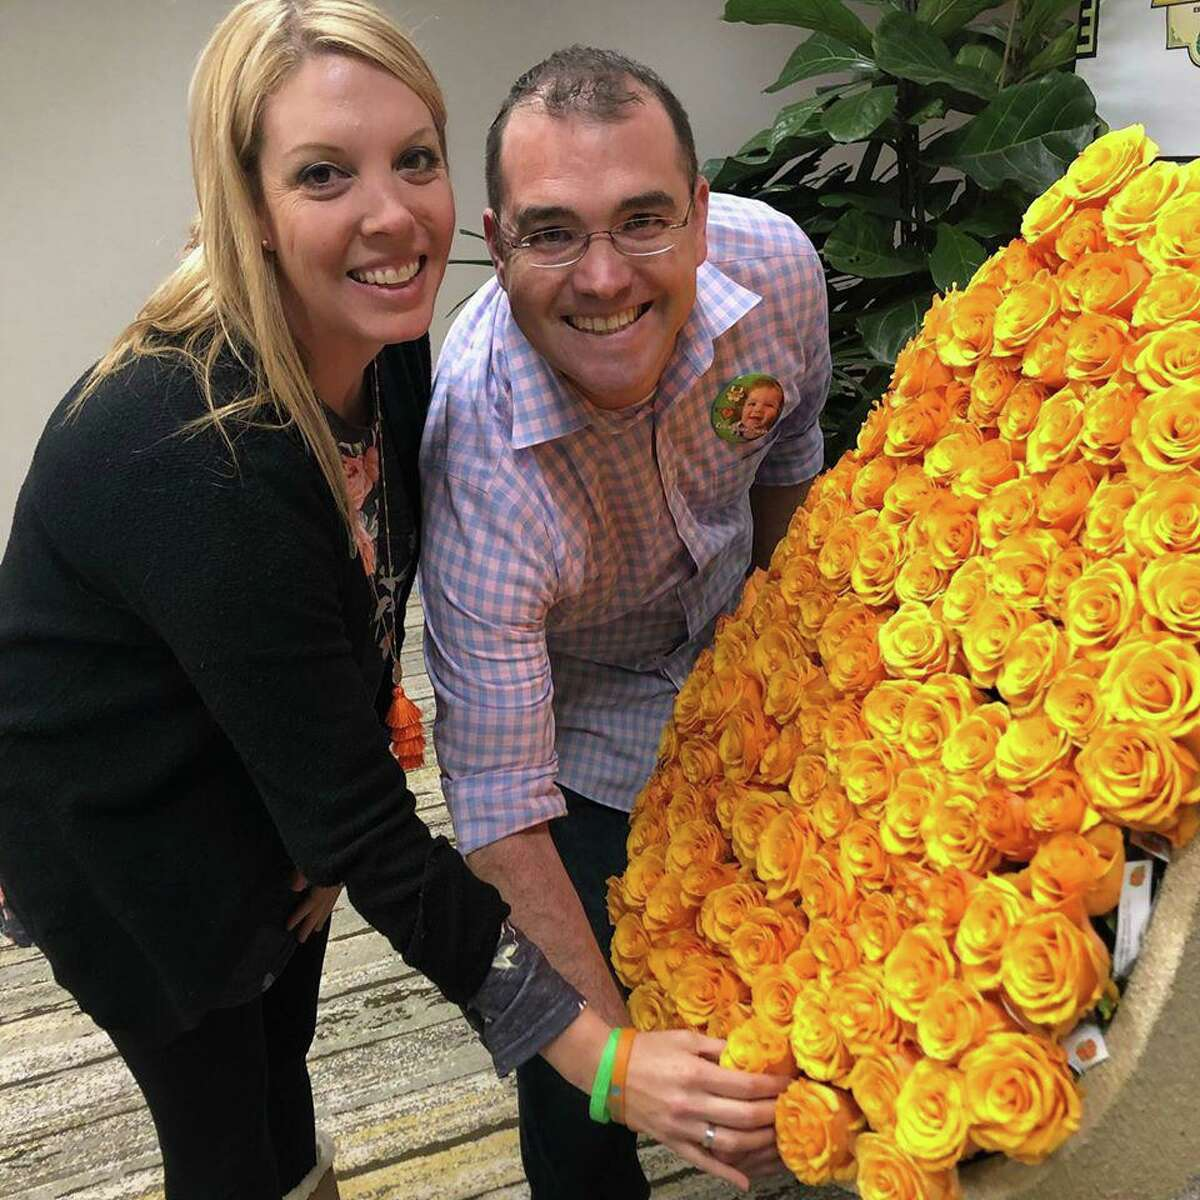 Kristen and Travis Cowan honor their son, Rylen, on the LifeGift float in the Rose Bowl Parade. Rylen saved the lives of five people through organ donation.